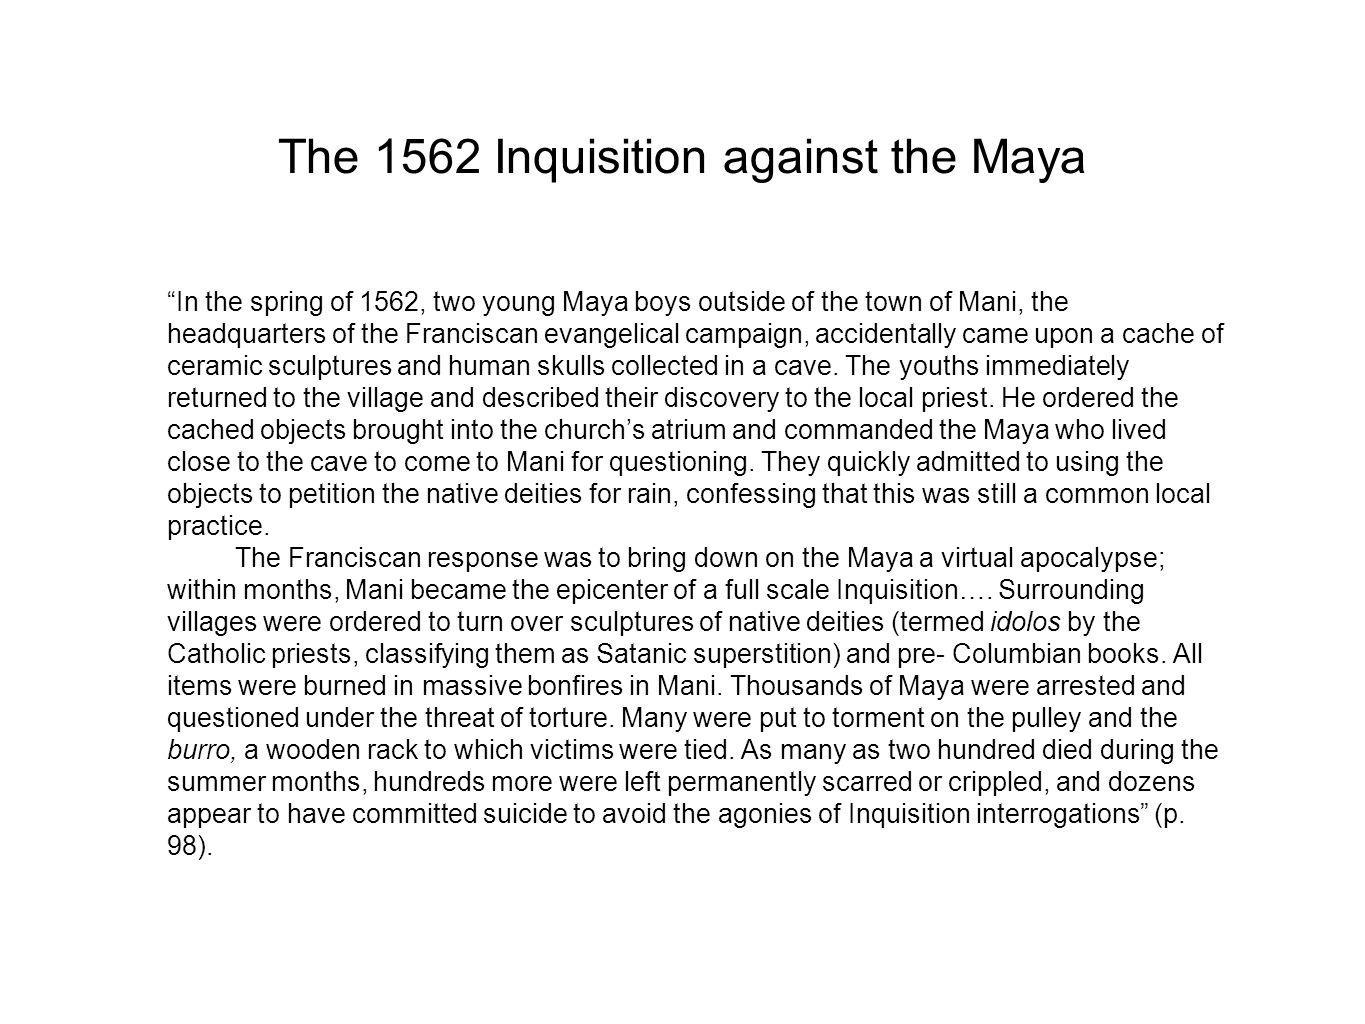 The 1562 Inquisition against the Maya In the spring of 1562, two young Maya boys outside of the town of Mani, the headquarters of the Franciscan evangelical campaign, accidentally came upon a cache of ceramic sculptures and human skulls collected in a cave.